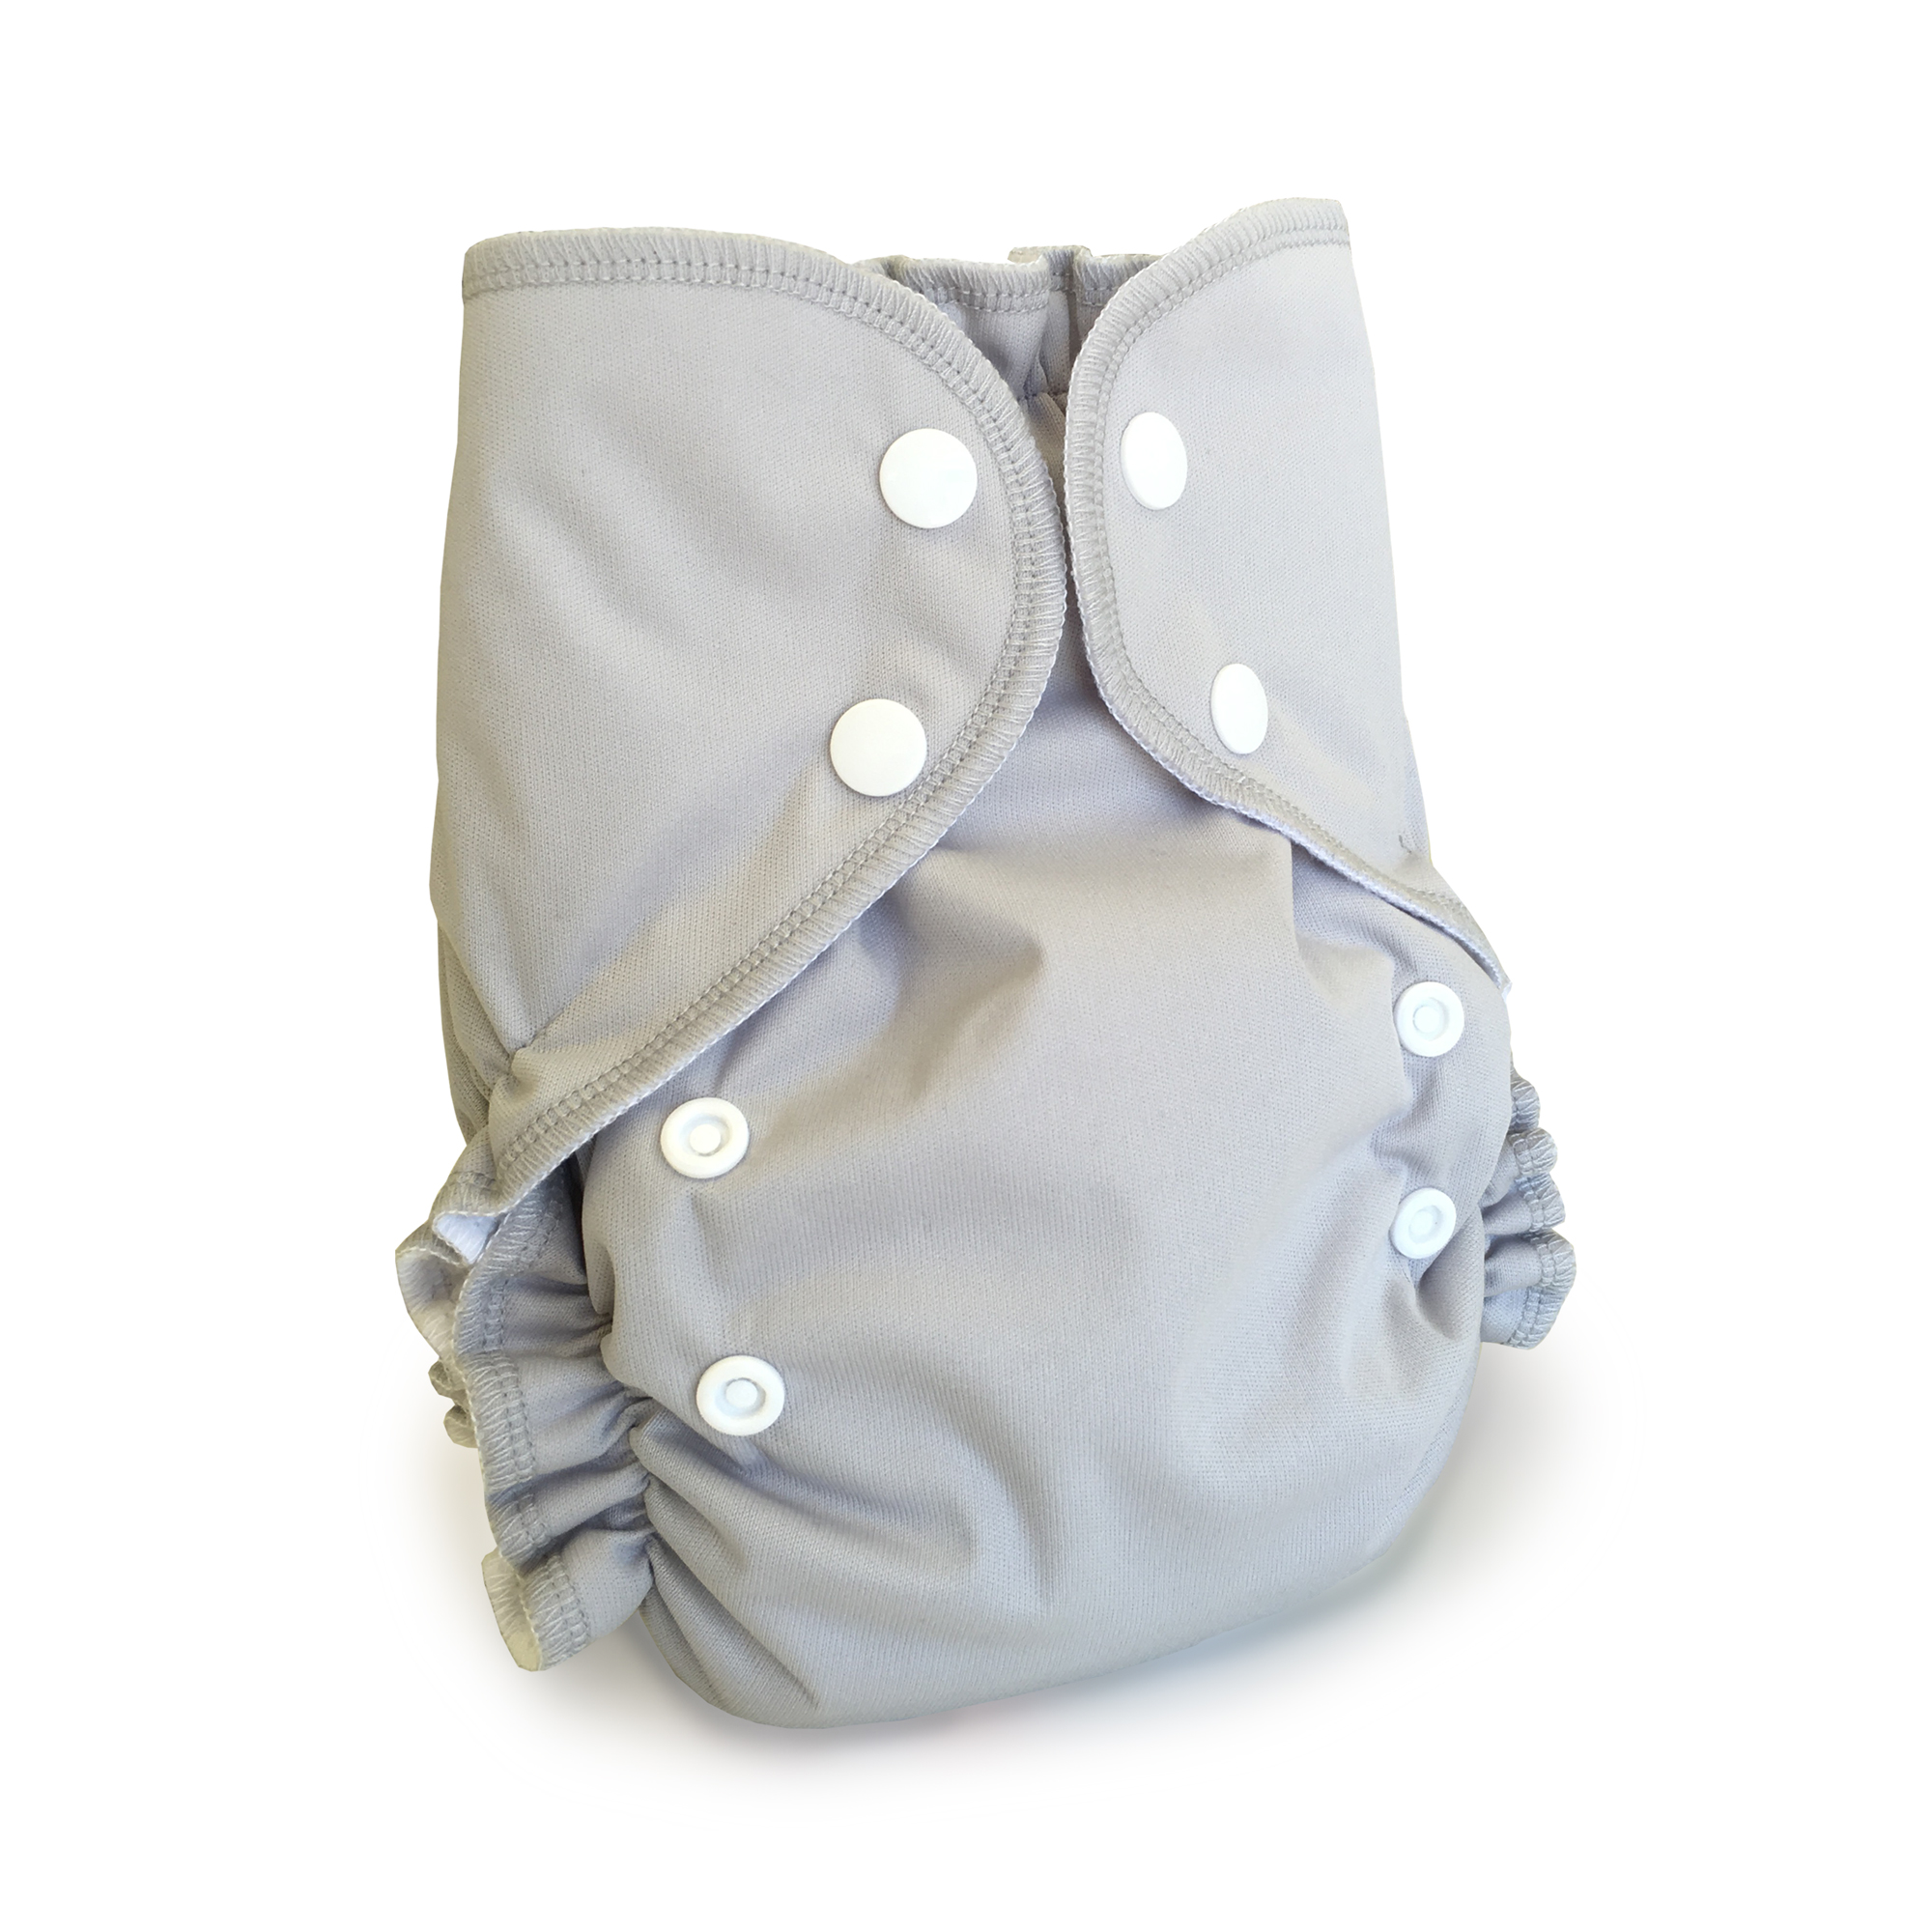 amp cloth diaper - STERLING